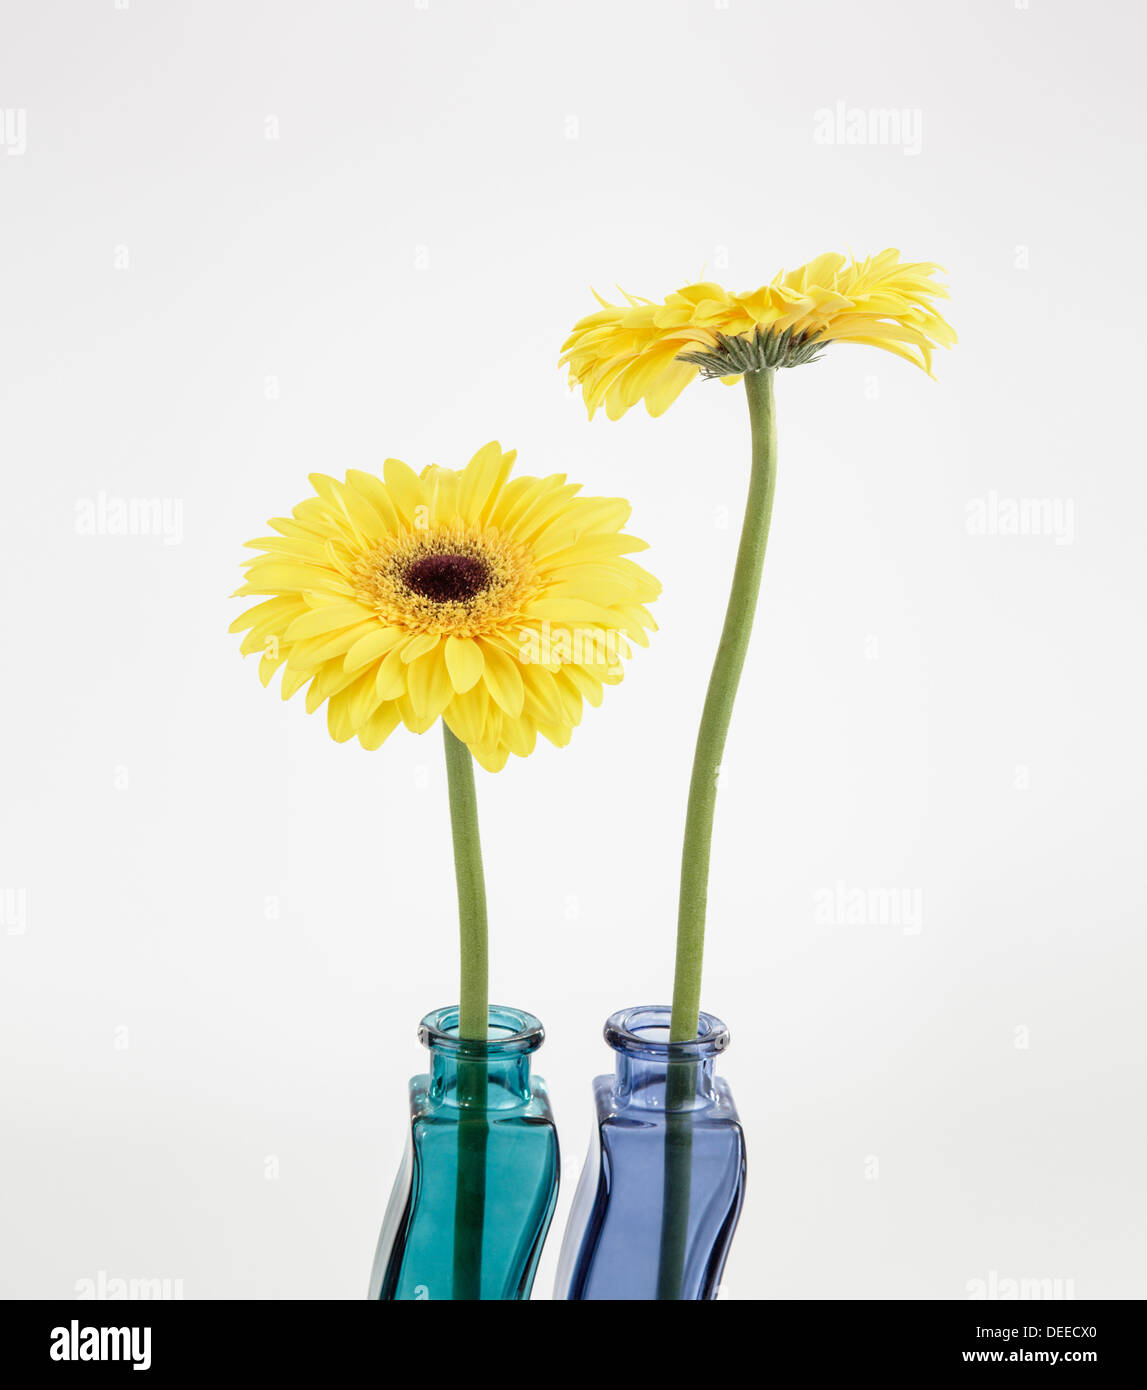 Two Gerberas in colorful glass vases - Stock Image